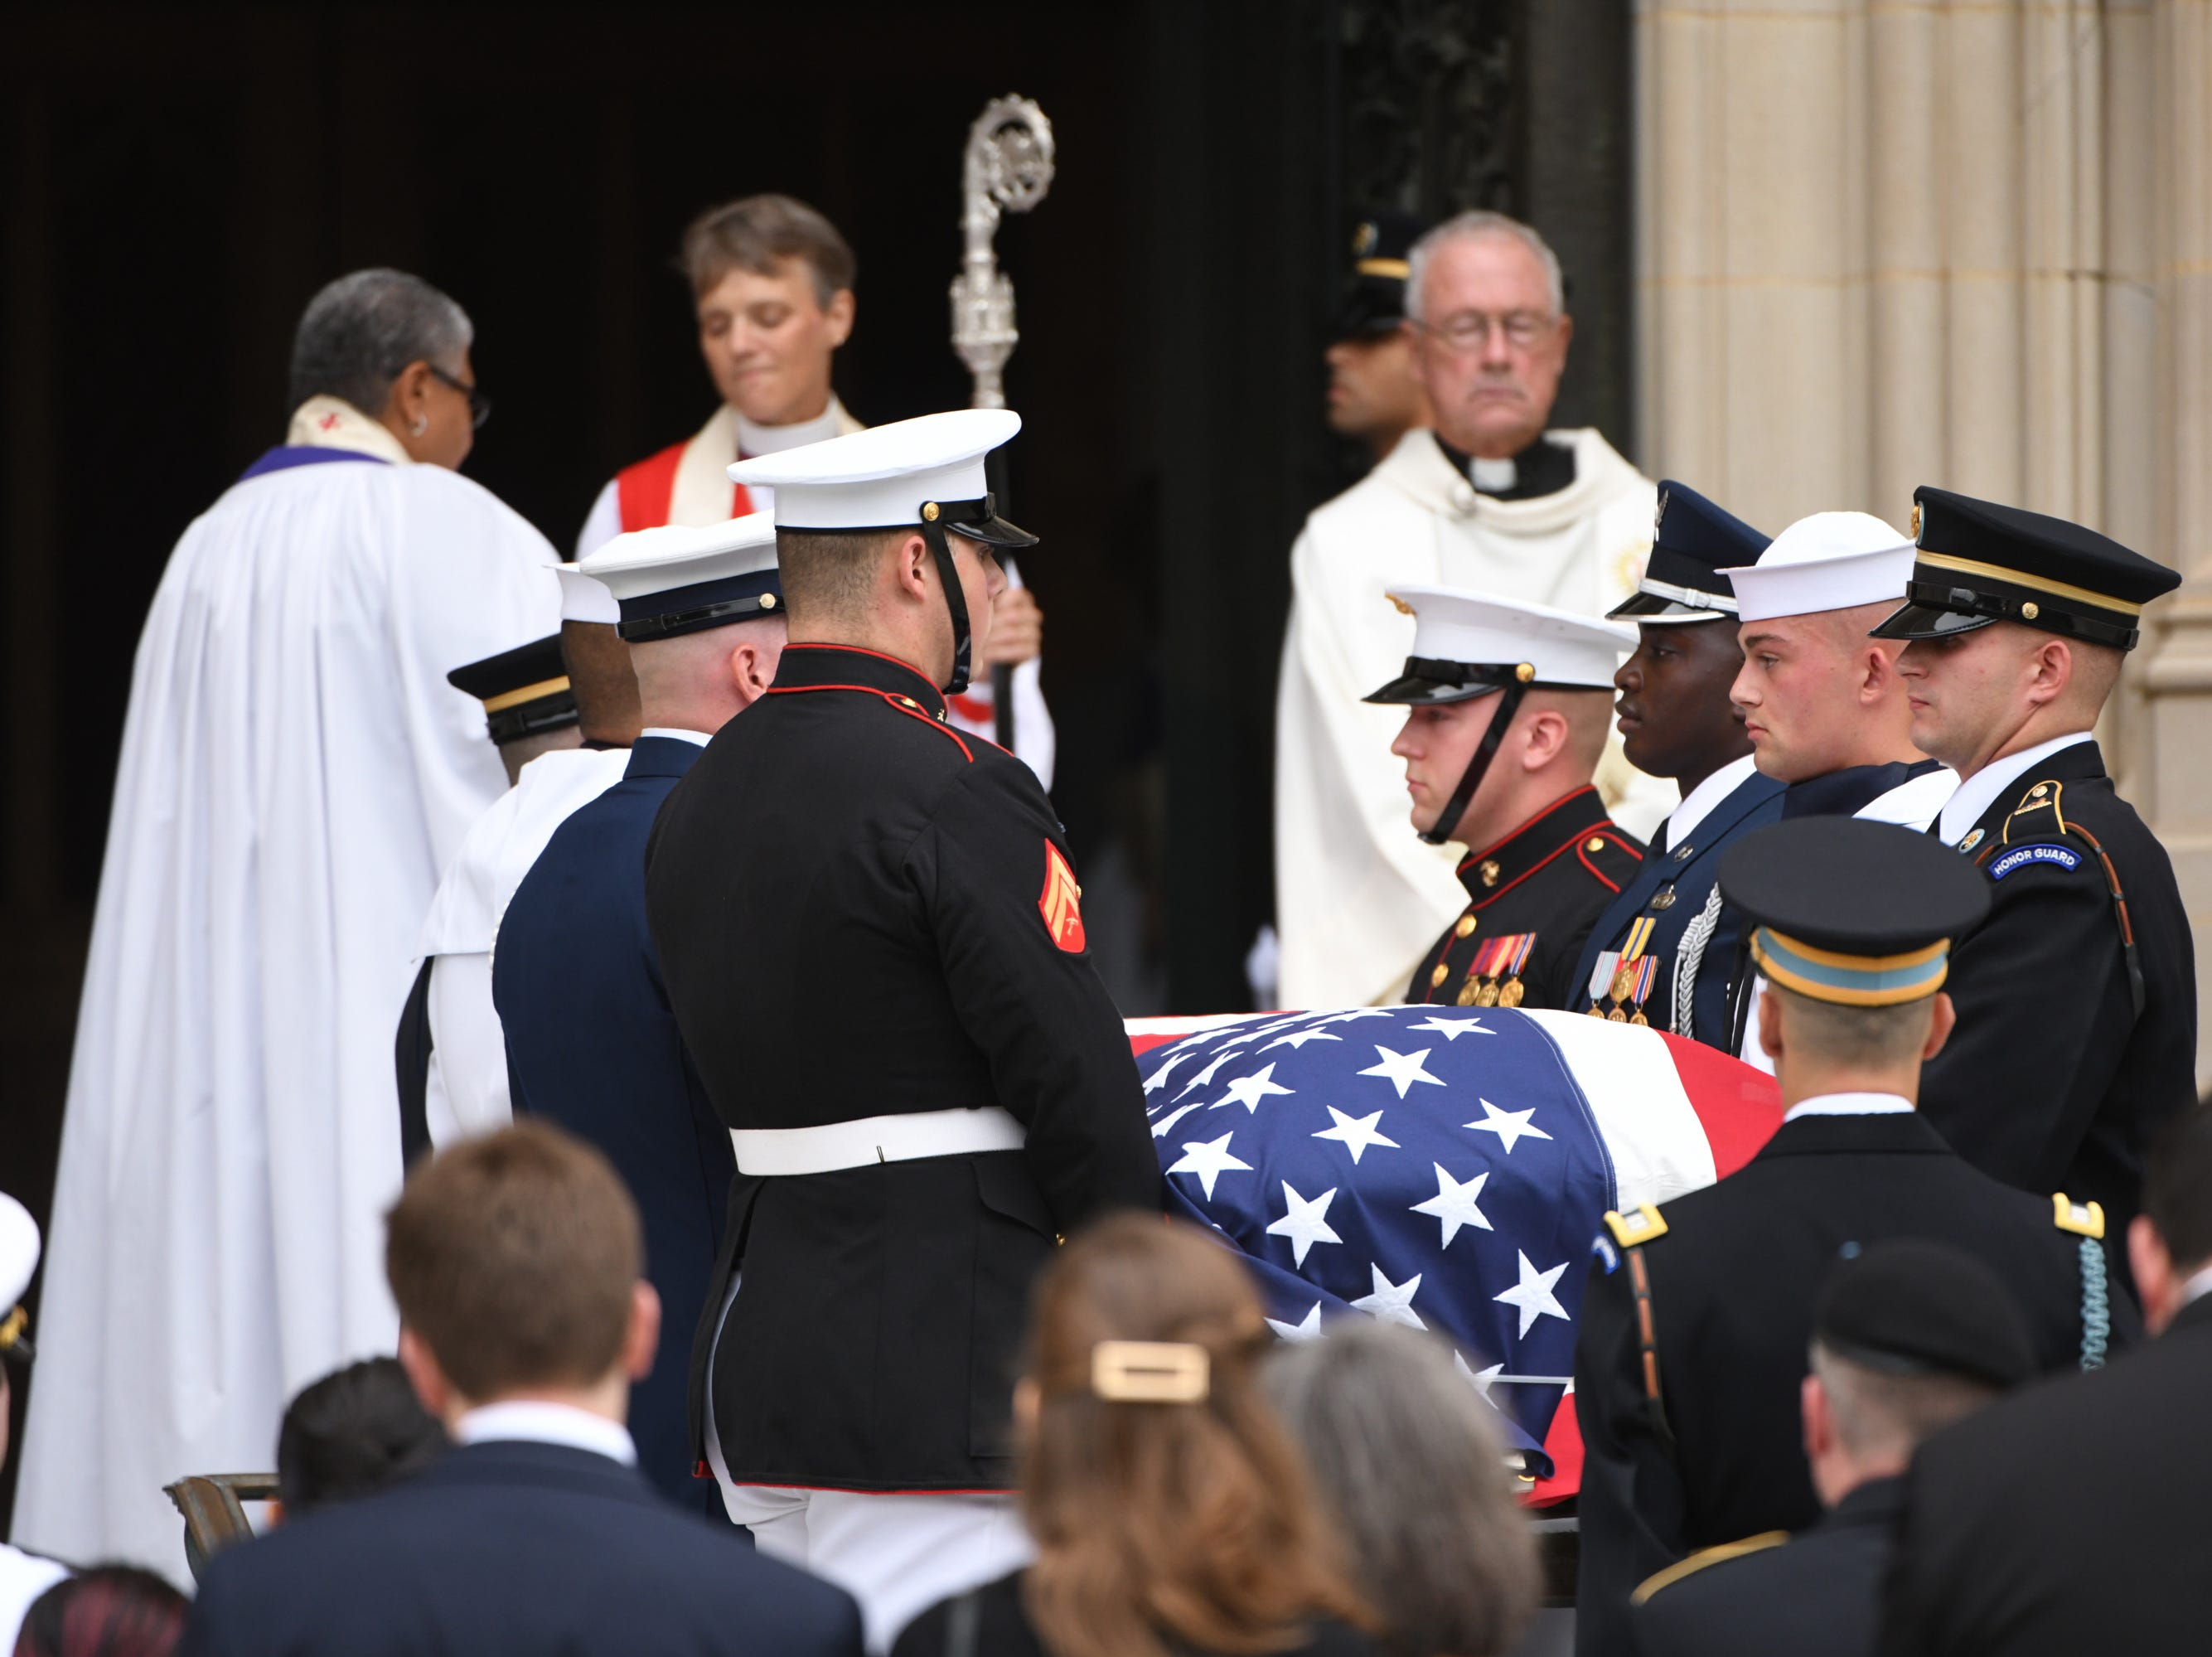 9/1/18 9:47:18 AM -- Washington, DC, U.S.A  -- Members of the McCain family watch as John McCainÕs casket is carried into the National Cathedral in Washington for a memorial service on Sept. 1, 2018. Sen. McCain died on Aug. 25. --    Photo by Jasper Colt, USA TODAY Staff